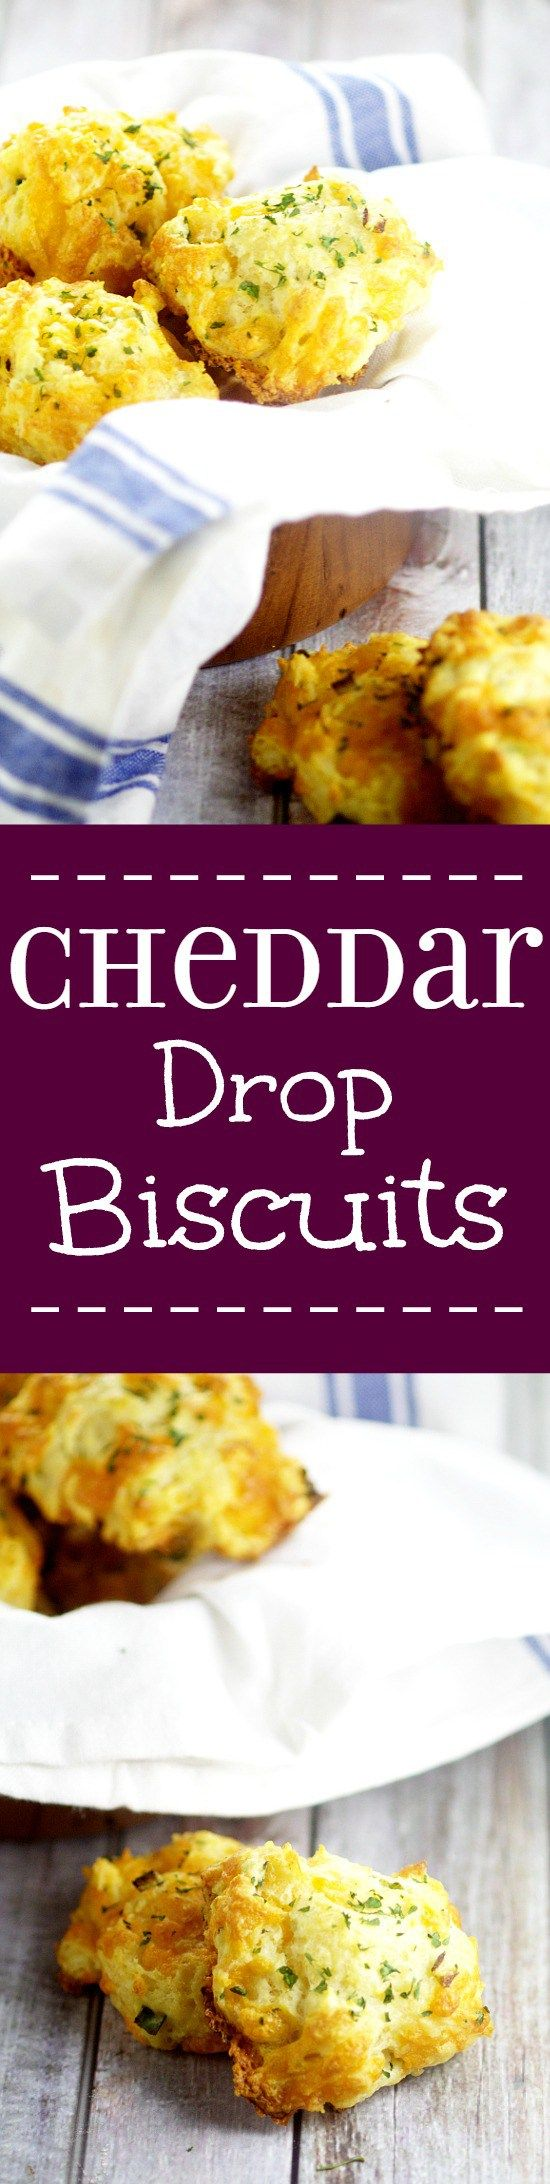 Easy, cheesy Cheddar Drop Biscuits